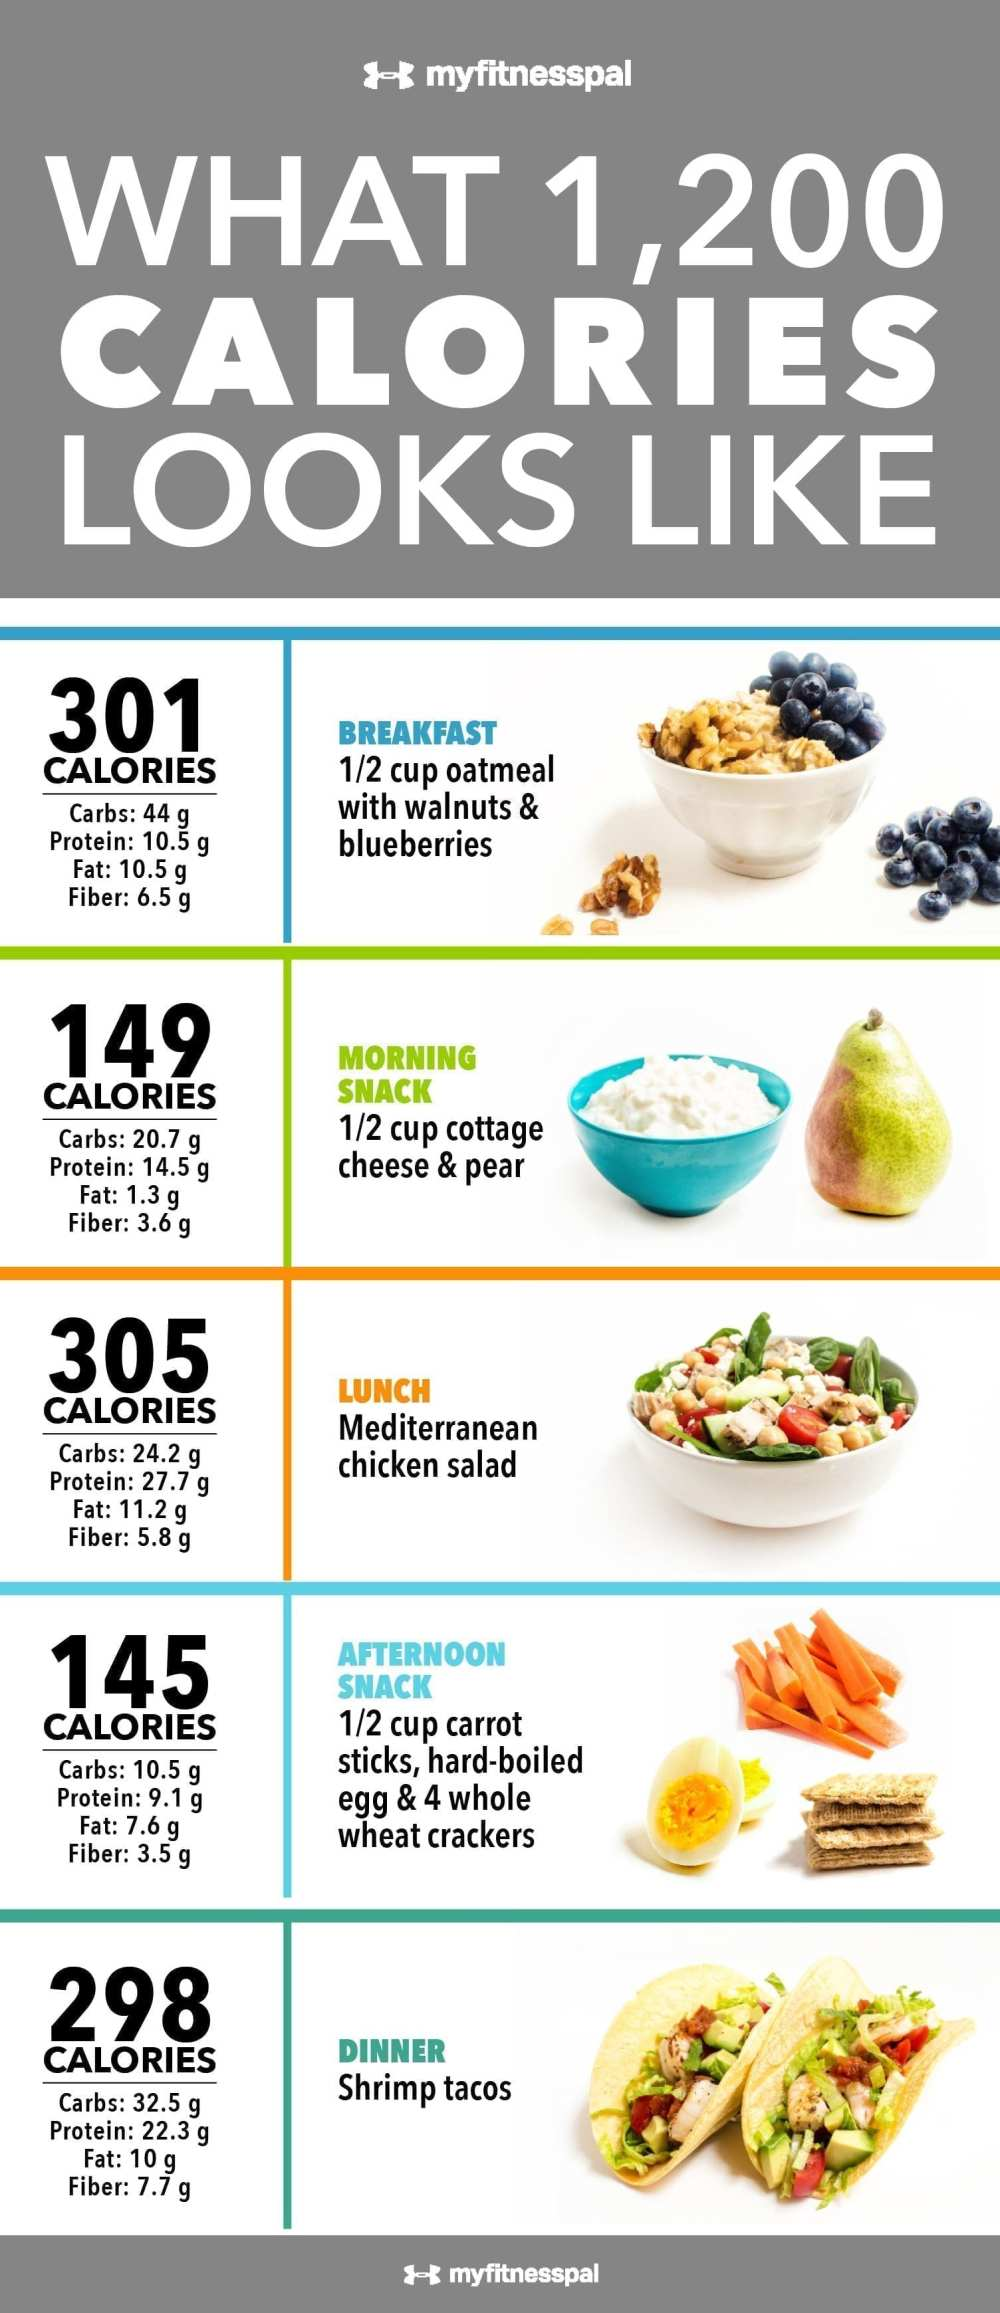 Dr nowzaradan diet plan the complete guide eat move hack publicly released his 1200 calorie diet plan however you can get a good idea of what 1200 calories looks like from this infographic from myfitnesspal nvjuhfo Image collections